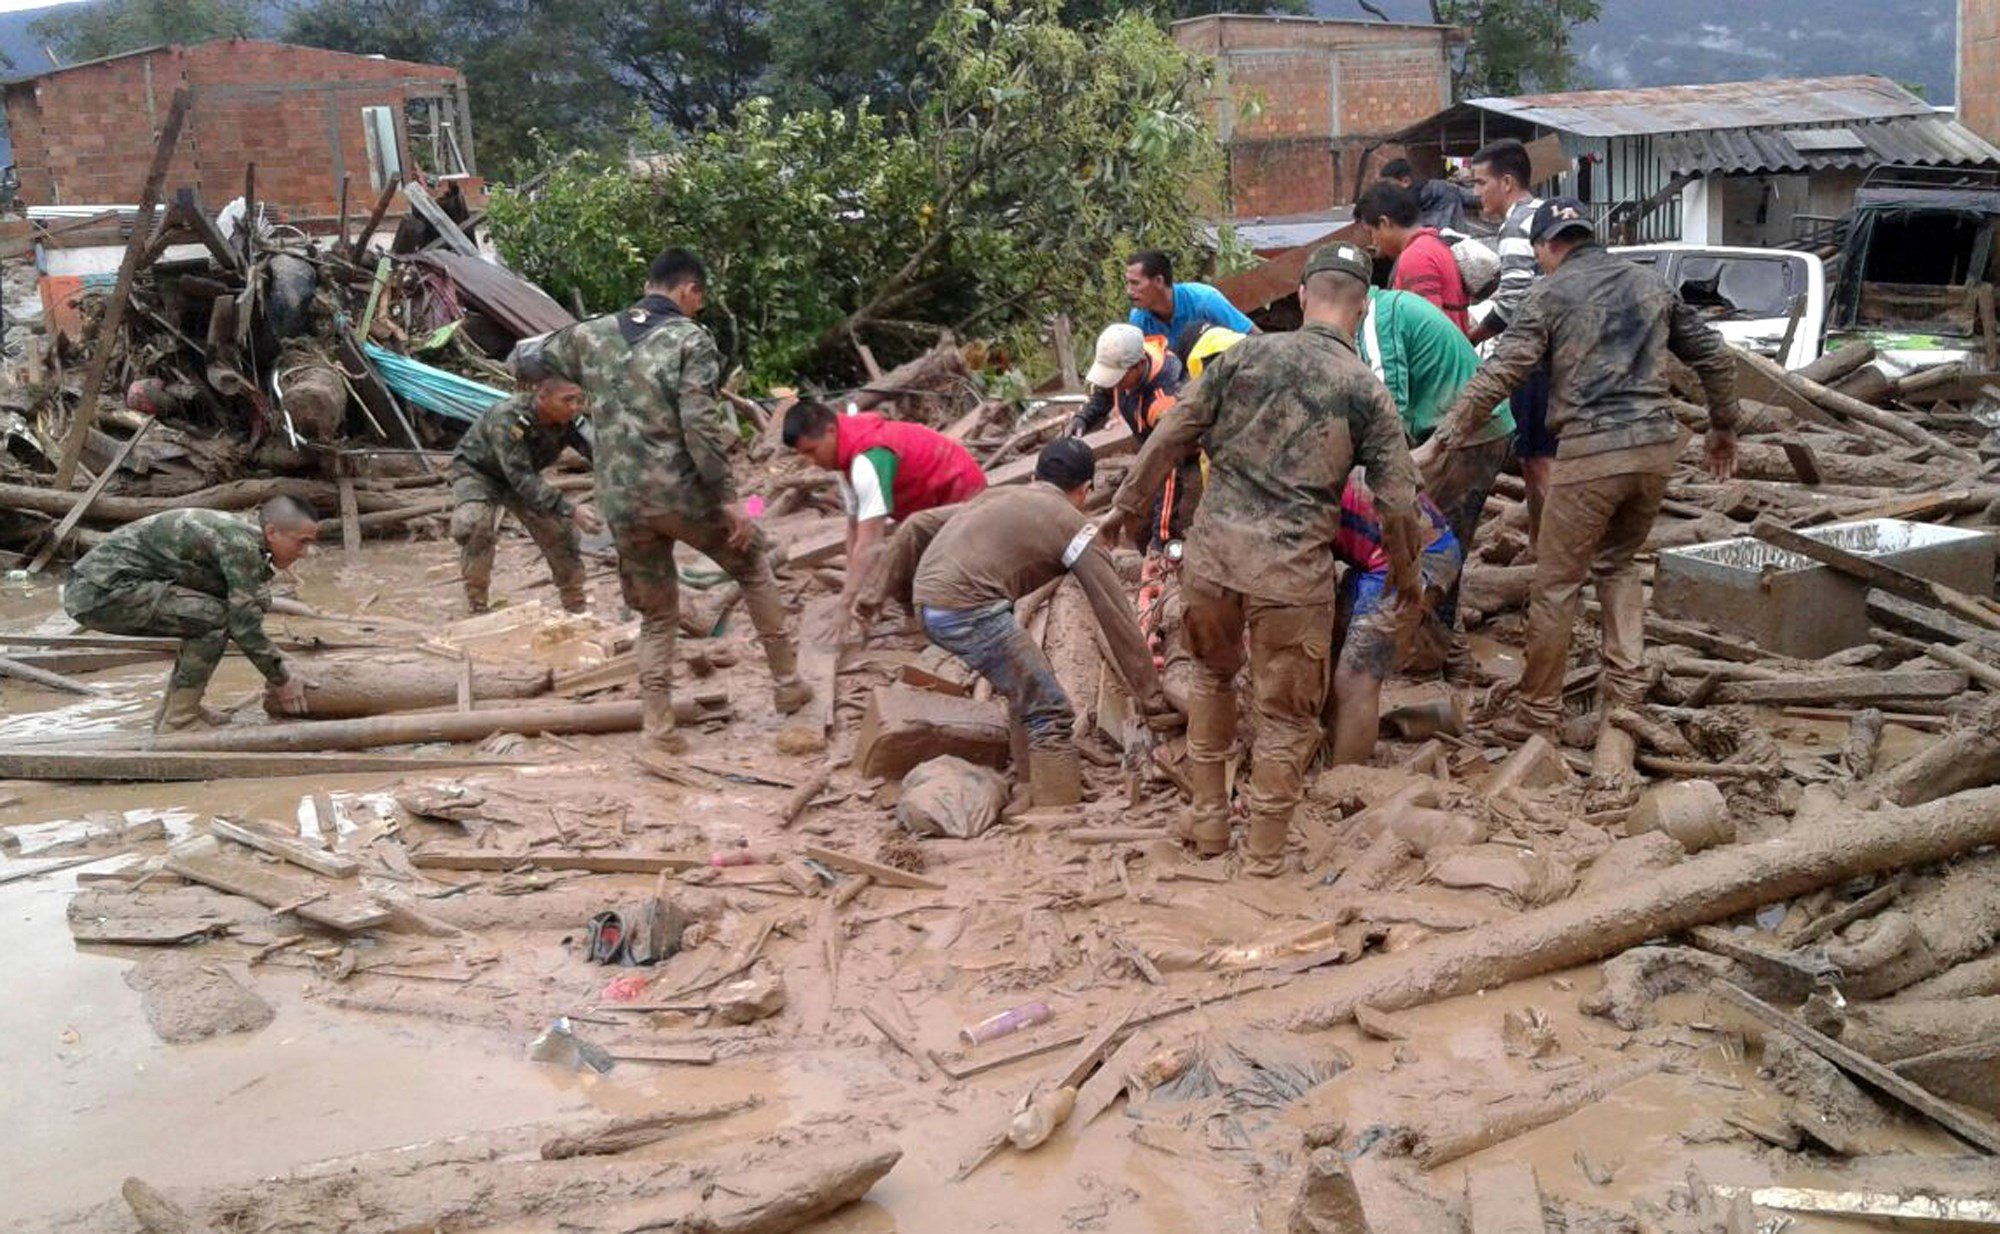 The incident triggered by intense rains left at least 100 people dead in Mocoa, located near Colombia's border with Ecuador. (Colombian Army Photo via AP)